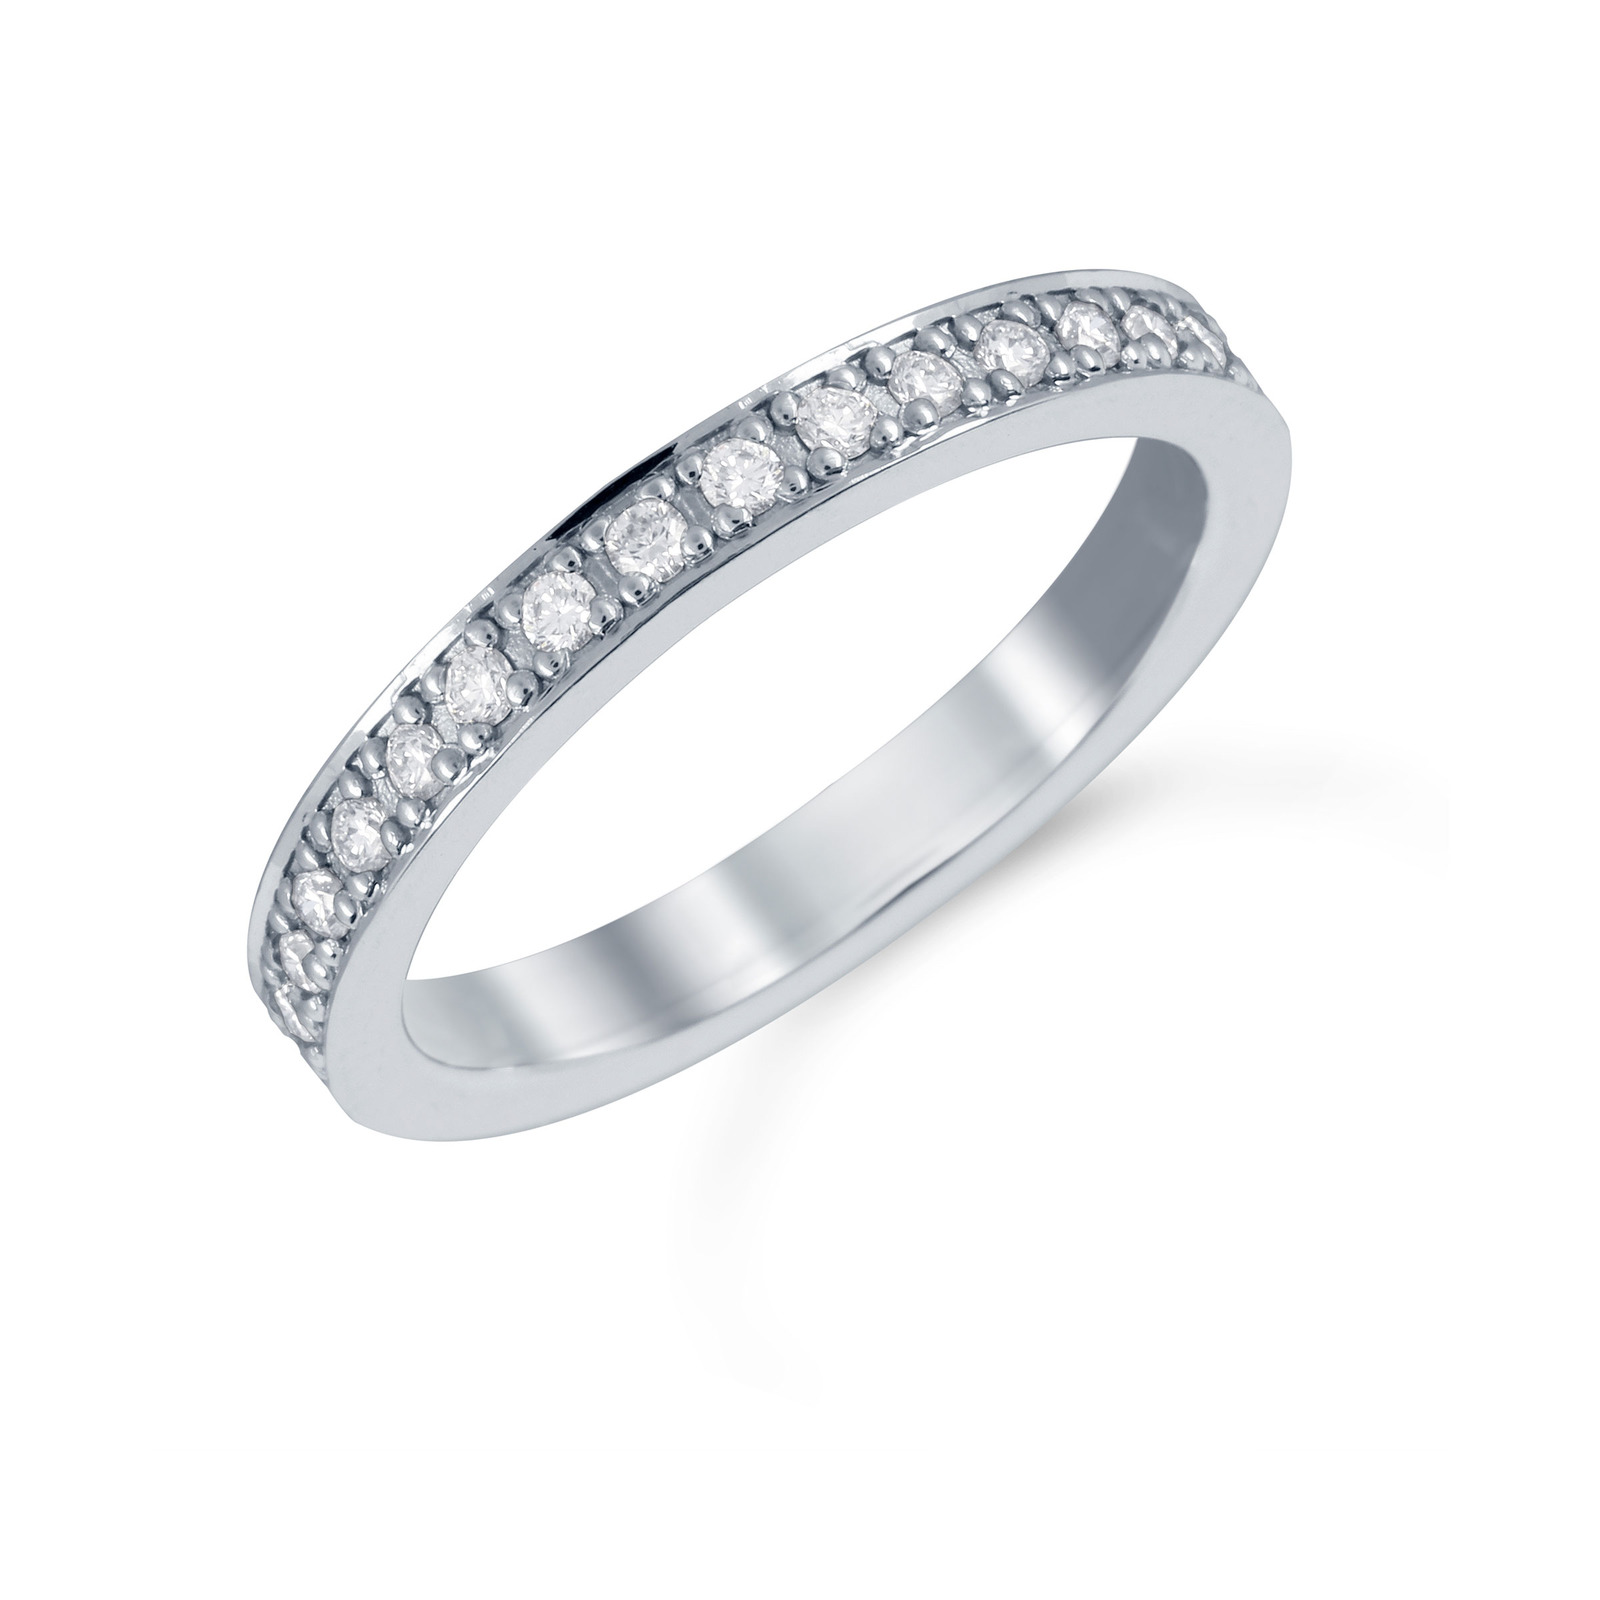 Mappin & Webb Platinum 0.19cttw Diamond Boscobel Wedding Ring